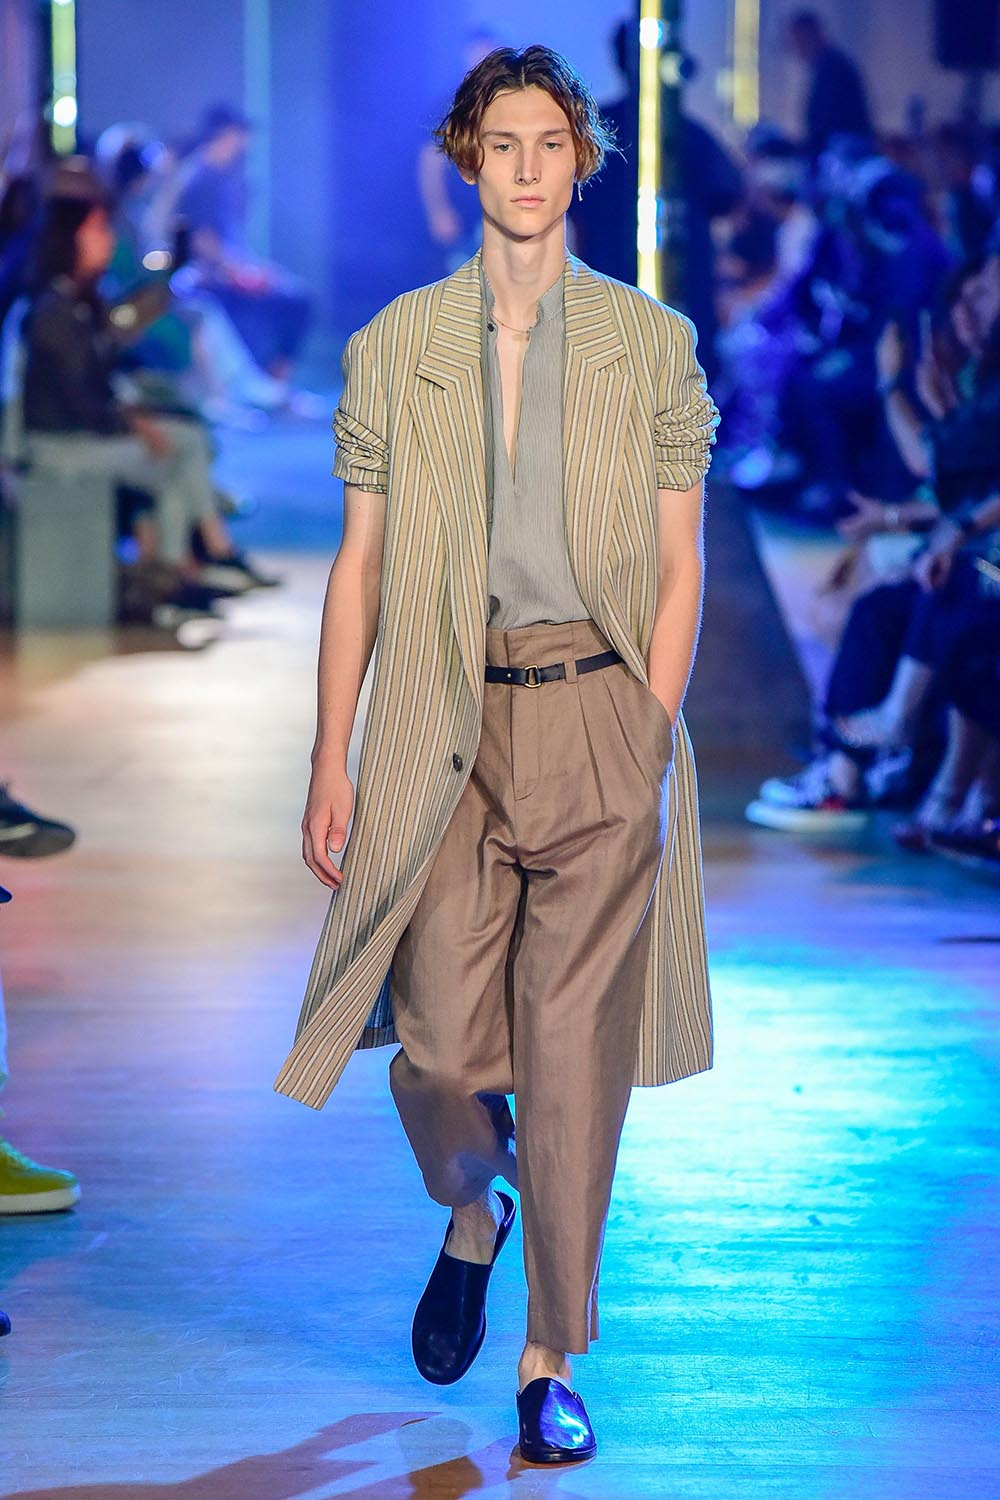 Cerruti 1881 Paris Fashion Week Men's SS19 - Sagaboi - Look 26